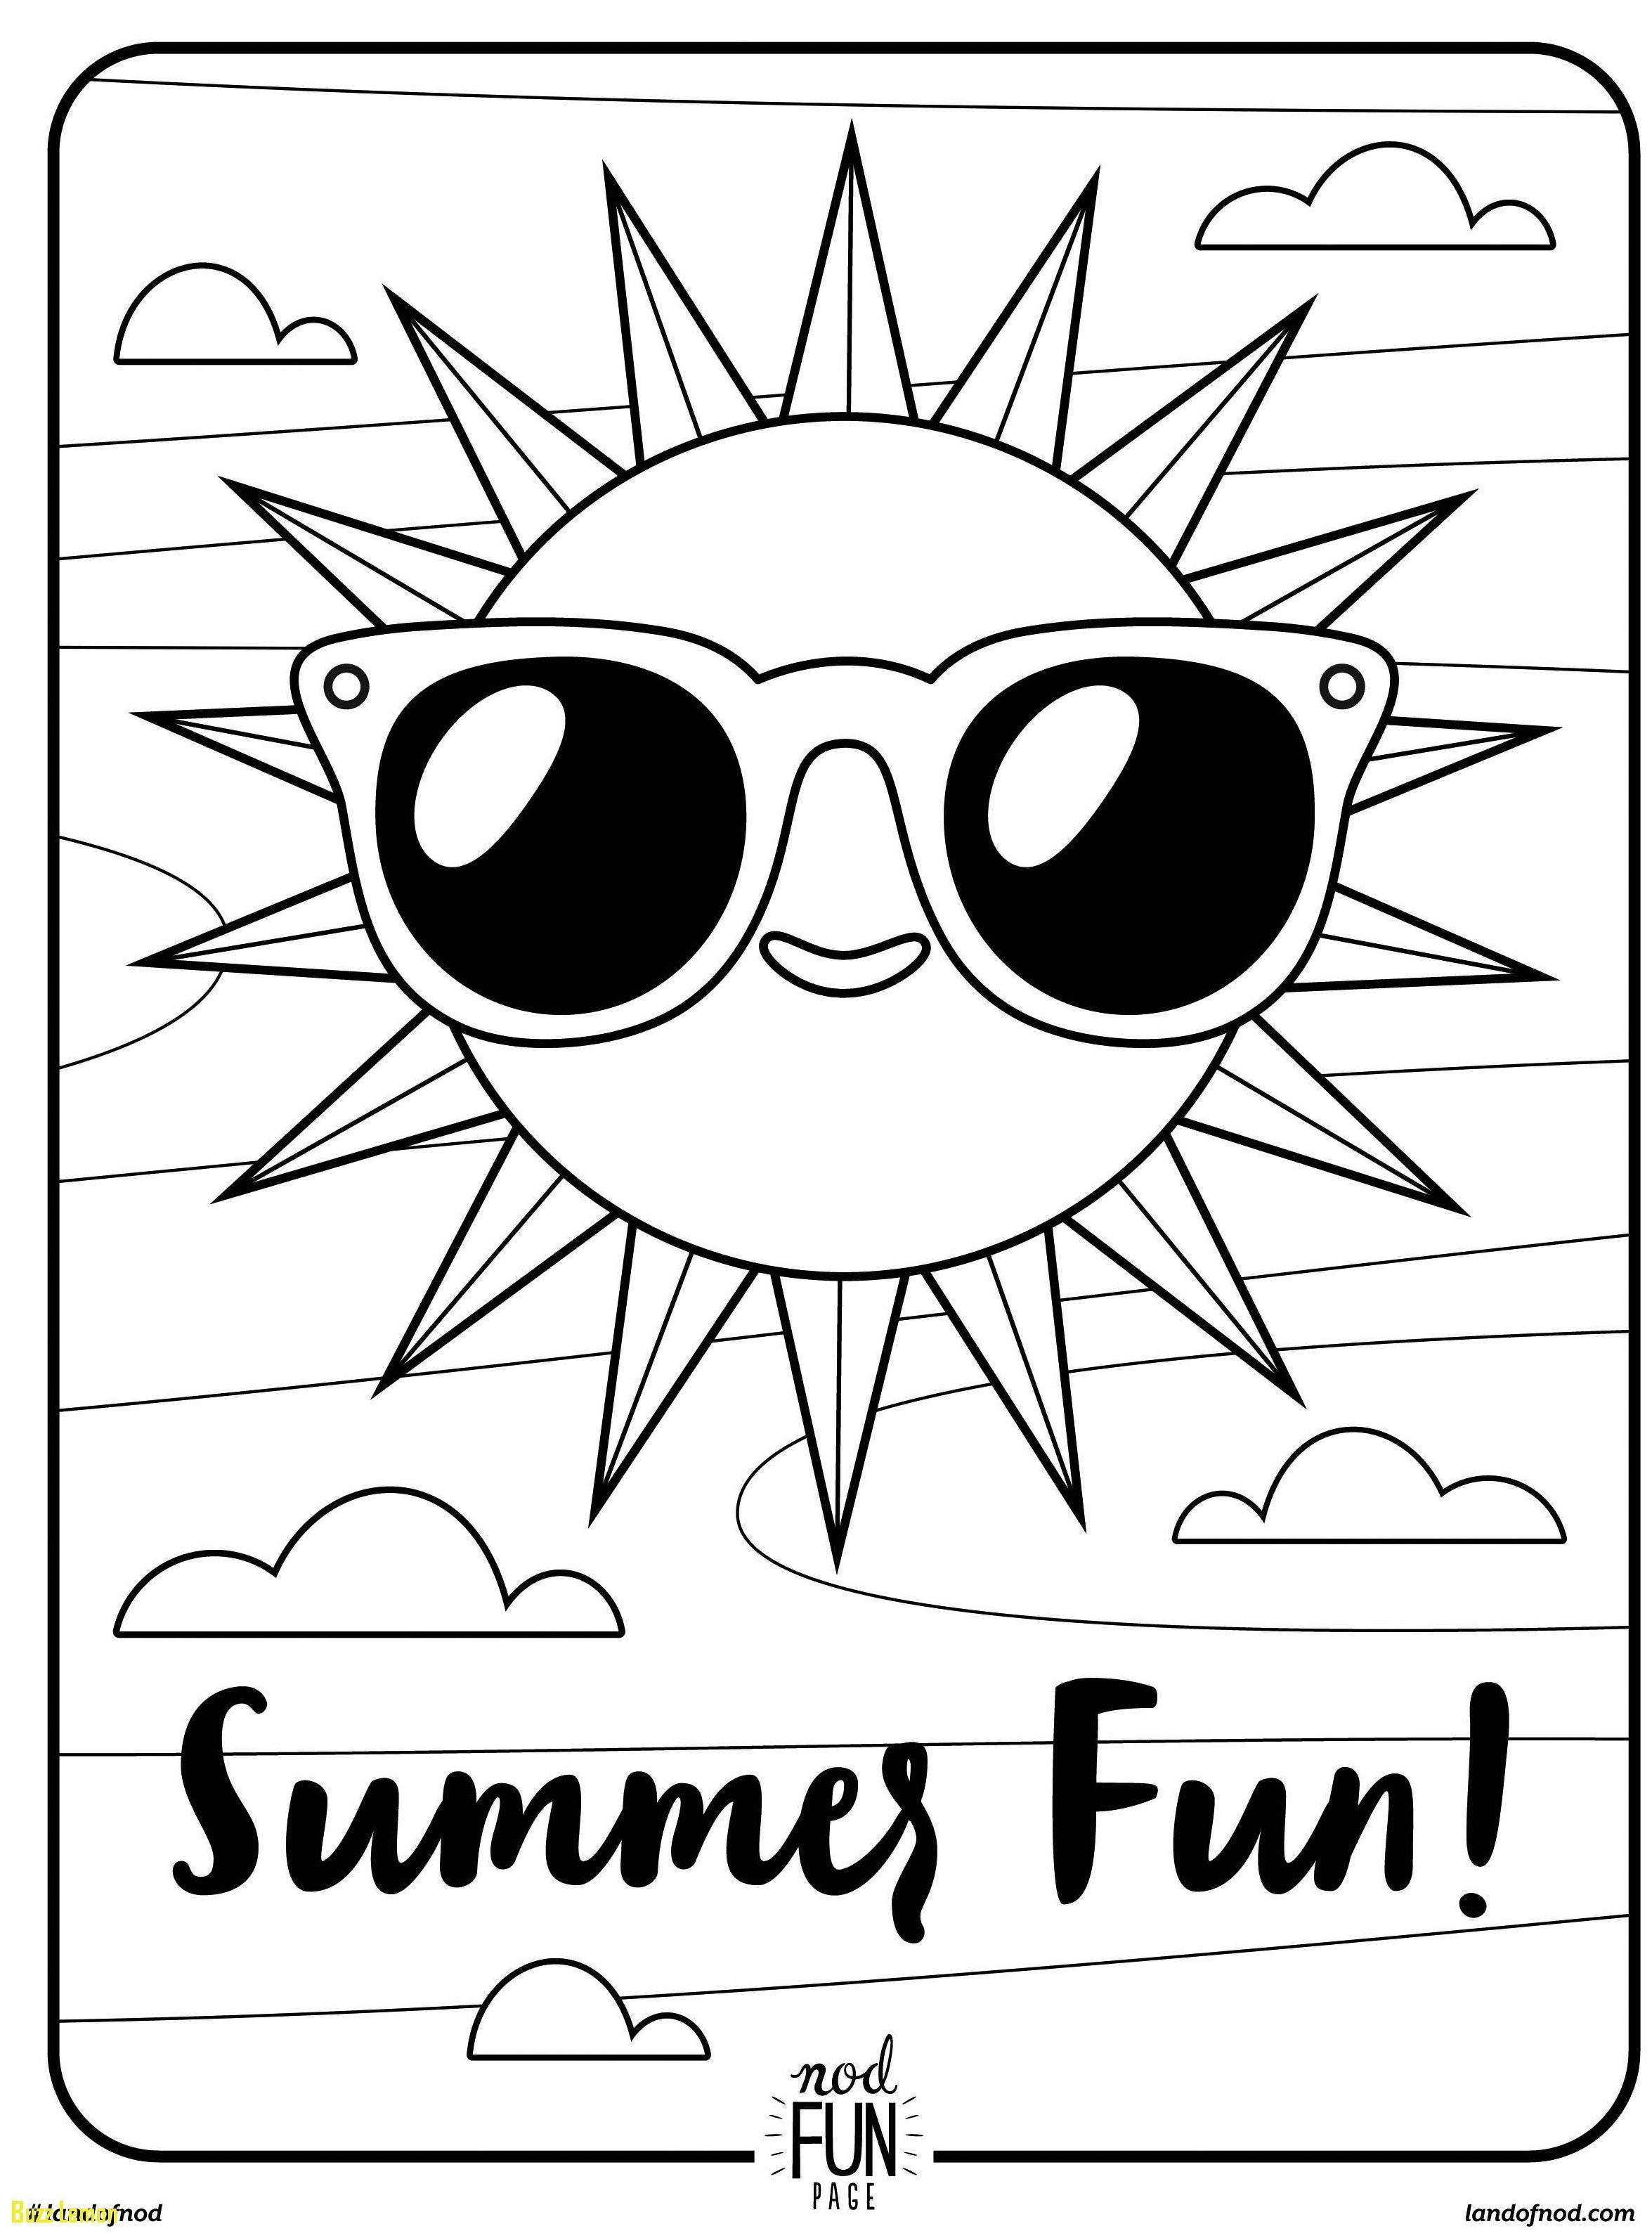 Coloring Ideas : 56 Outstanding Summer Coloring Pages To Print - Free Printable Summer Coloring Pages For Adults